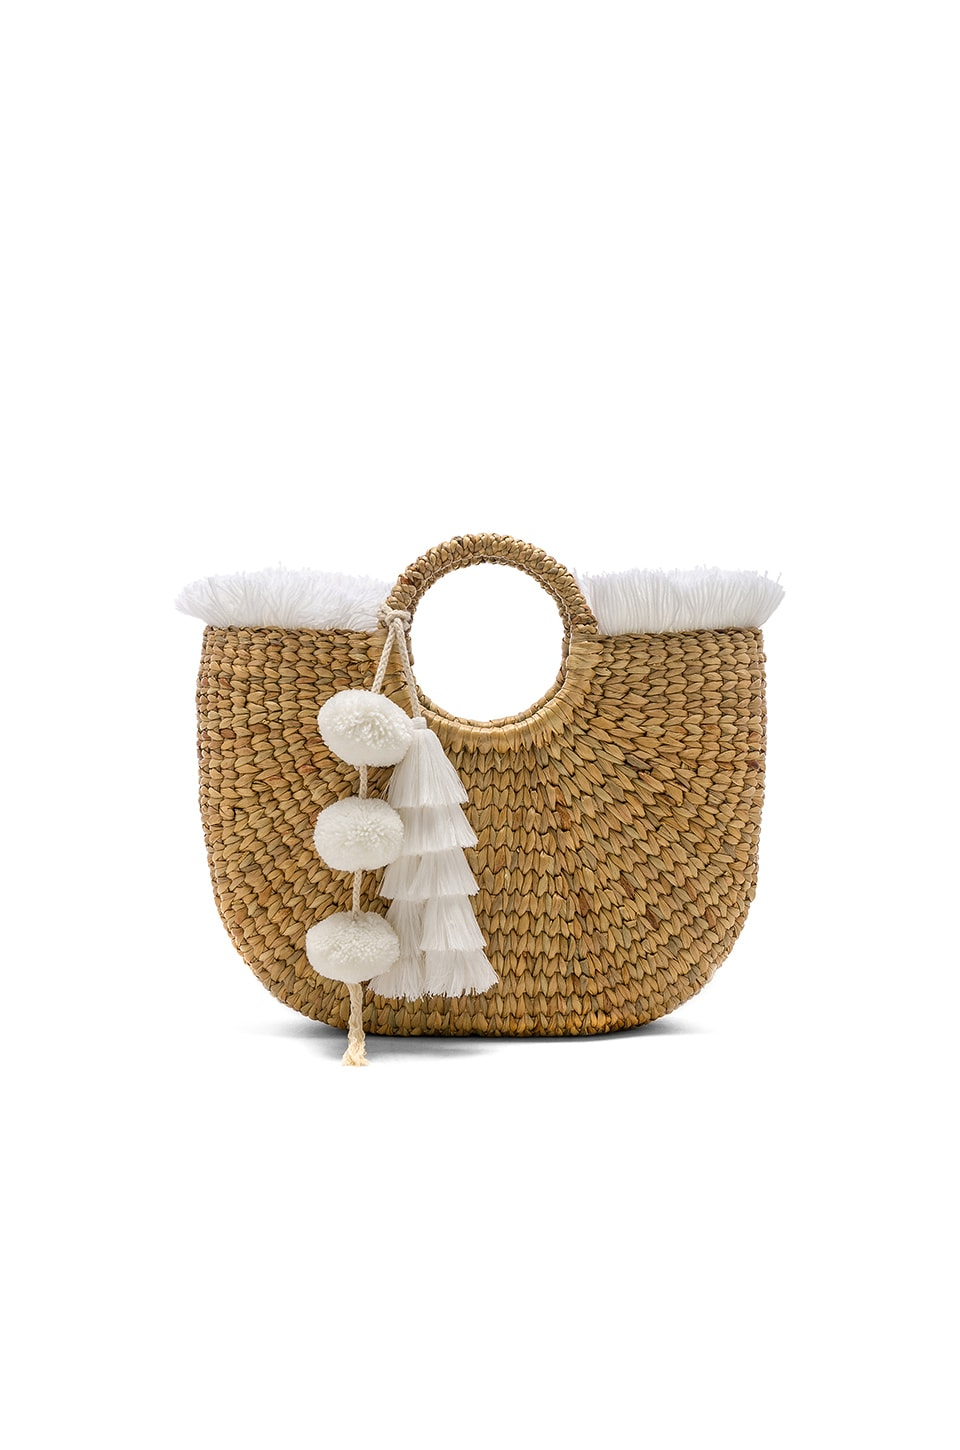 JADEtribe Basket Small Fringe in White & White